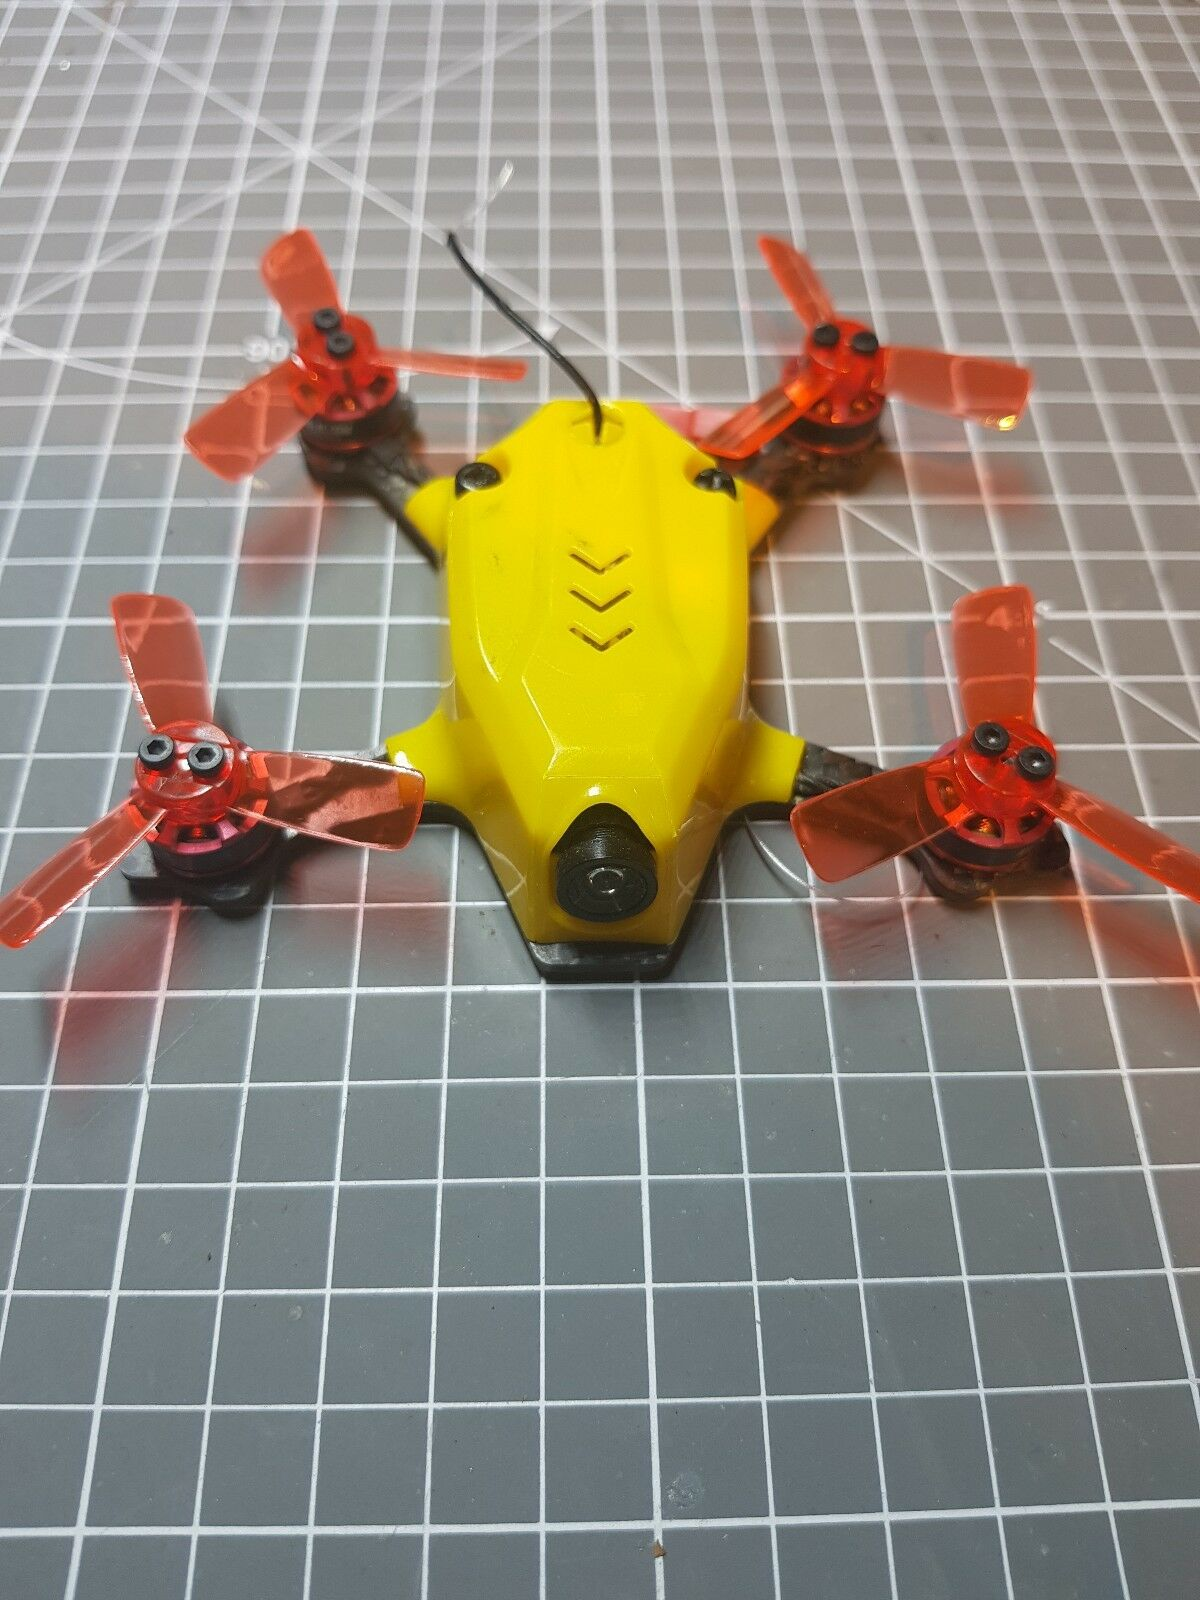 KINGKONG LDARC 95GT 95mm RC FPV Racing Drone with F3 4in1 10A Blheli_S 25mW 16CH